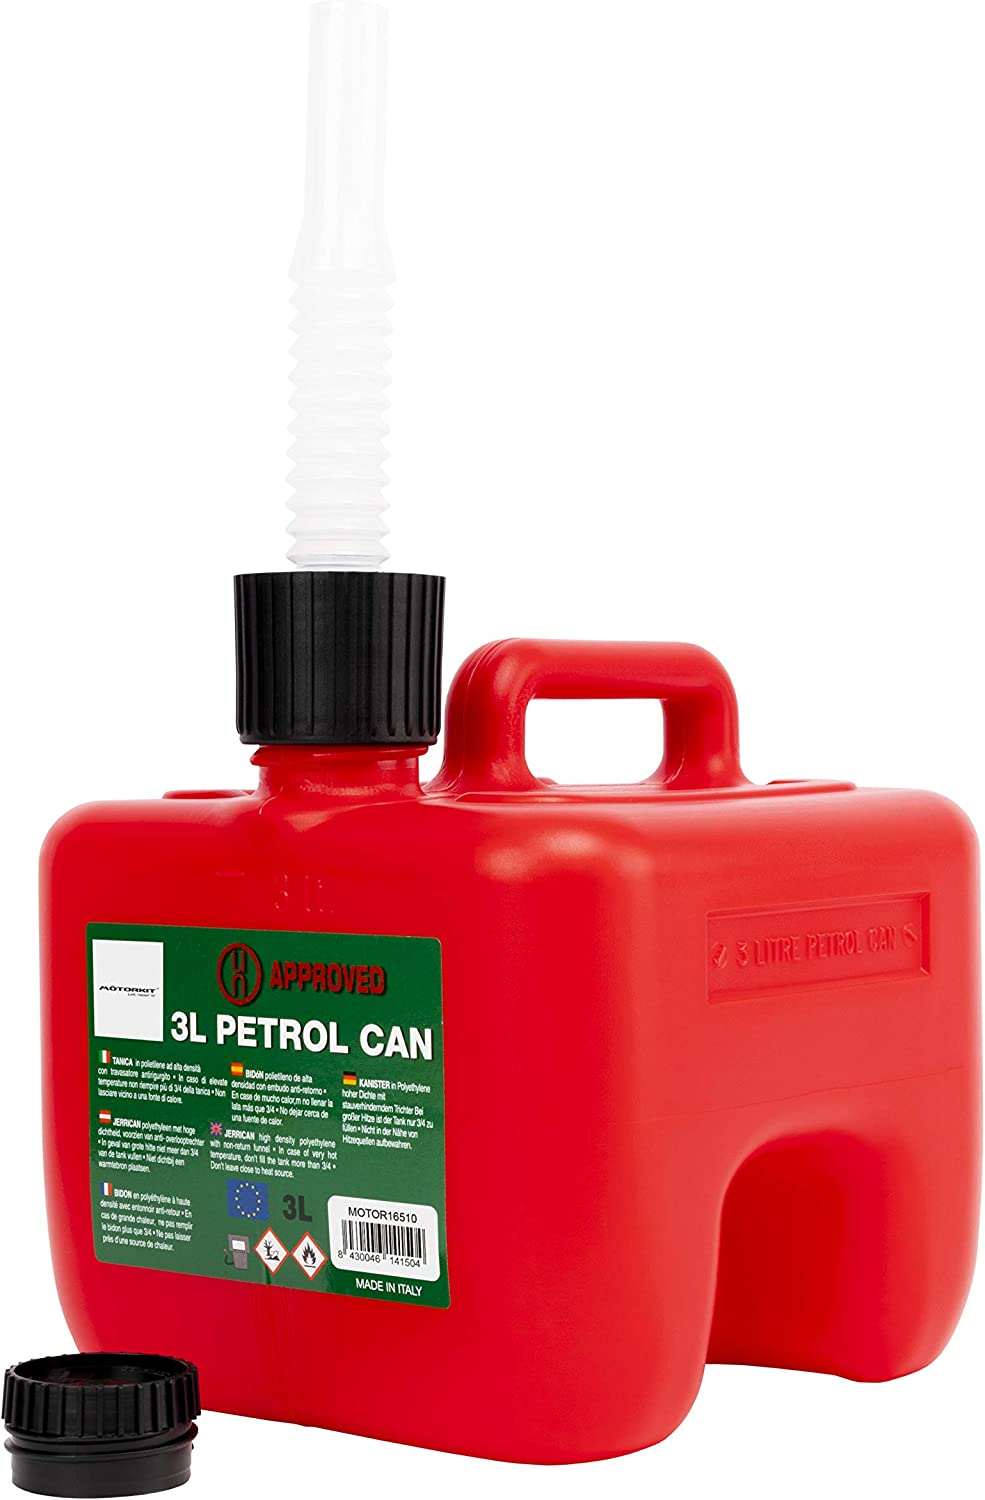 with Easy-to-Read Measuring Strip Includes Funnel MOTORKIT MOTOR16511 5L Fuel Can Petrol//Diesel Approved